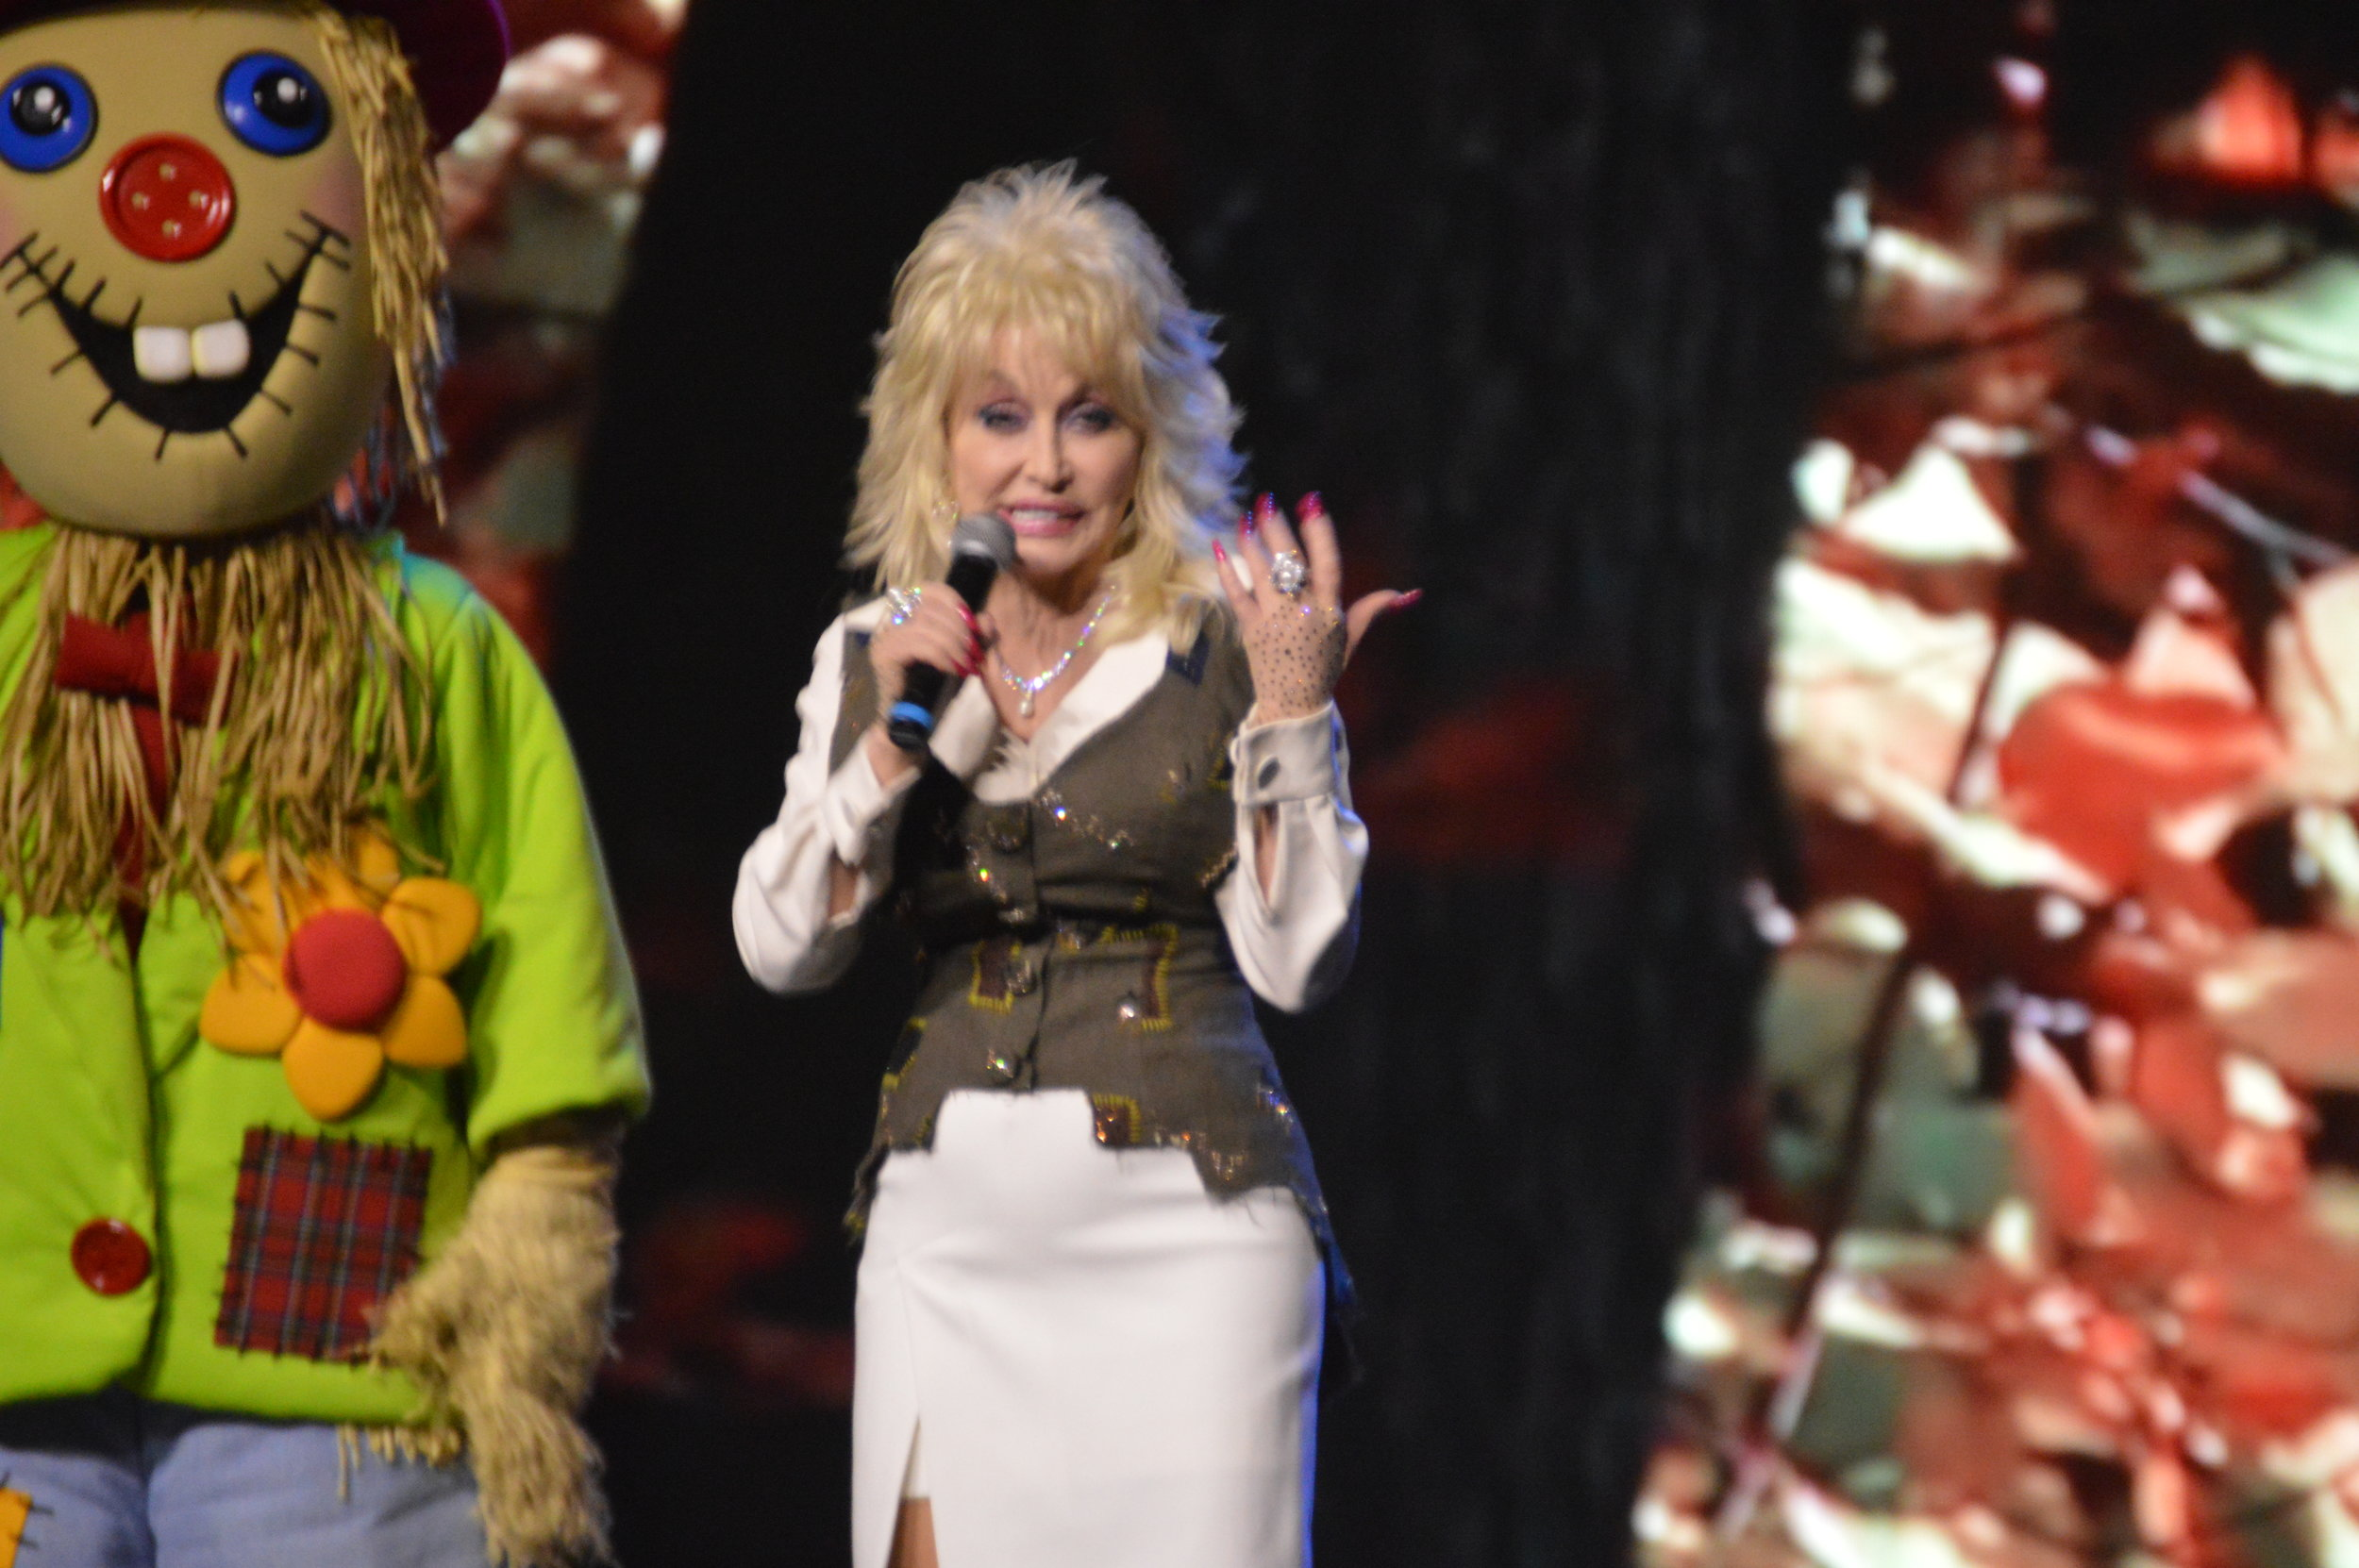 Dolly Parton tells a crowd gathered at Dollywood what to expect at this year's Harvest Festival.